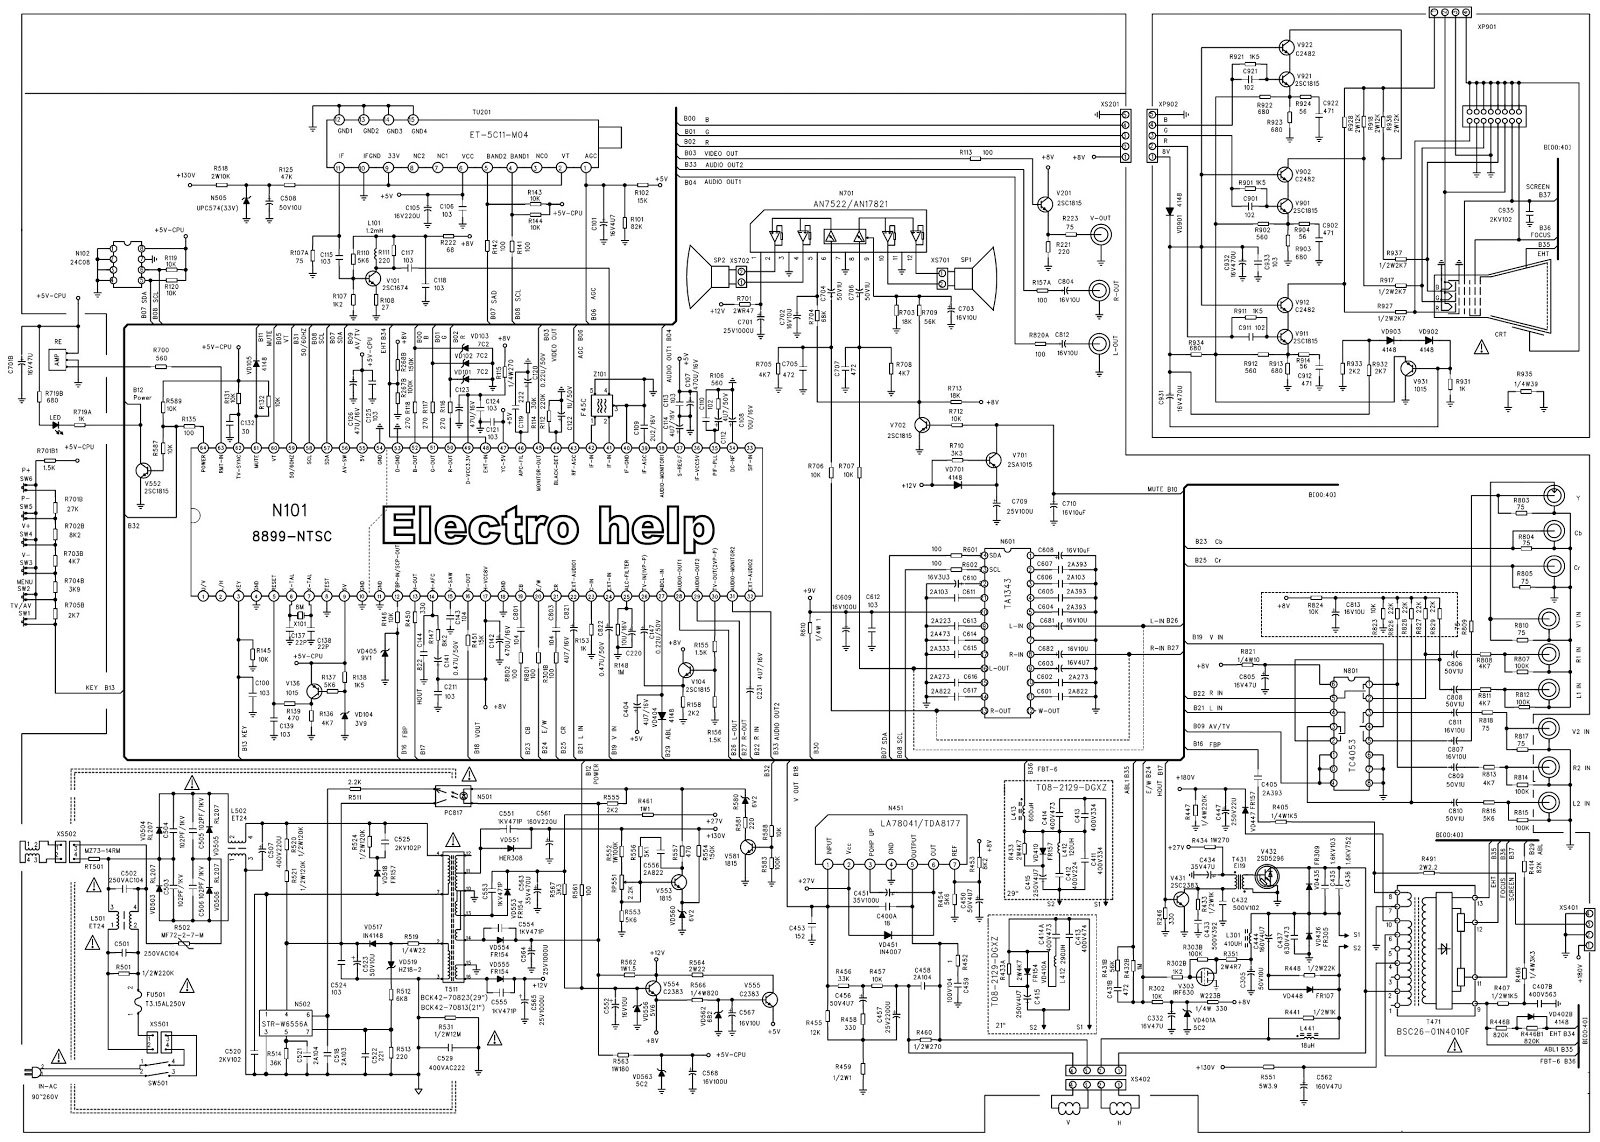 circuit diagram for tv  tv schematic diagram wiring diagrams image free gmaili  binatone colour